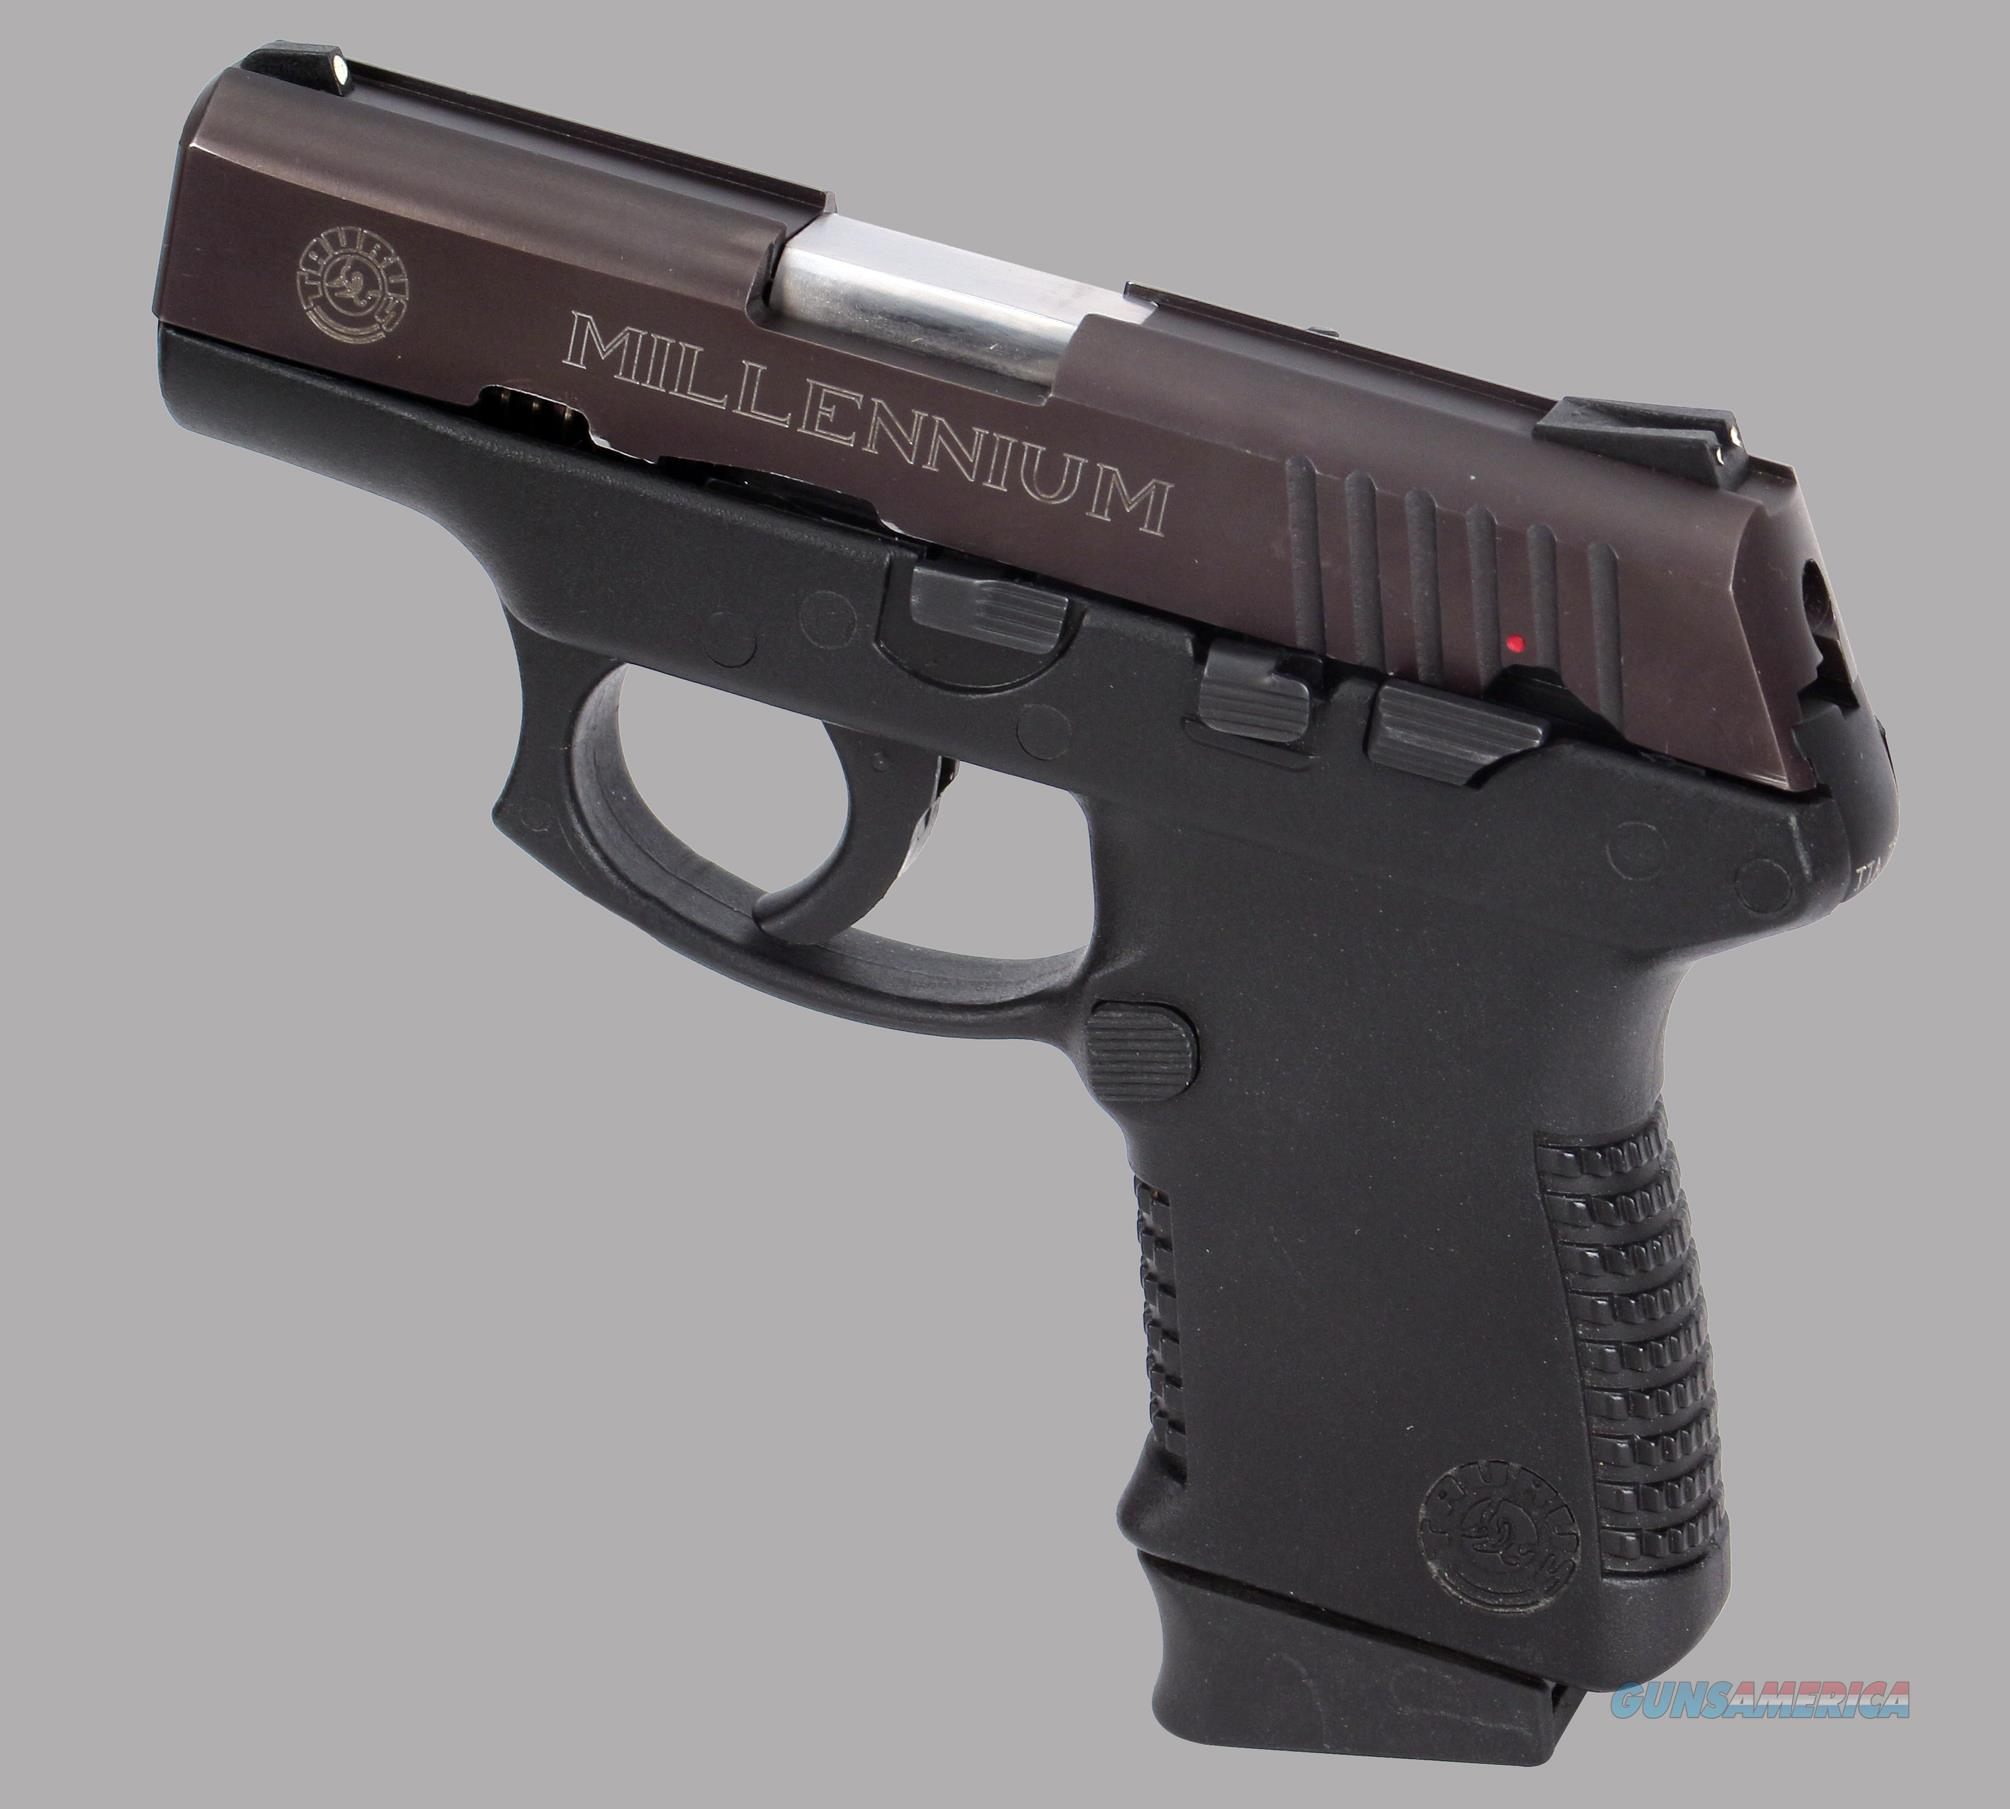 taurus pt11 millennium 9mm pistol for sale